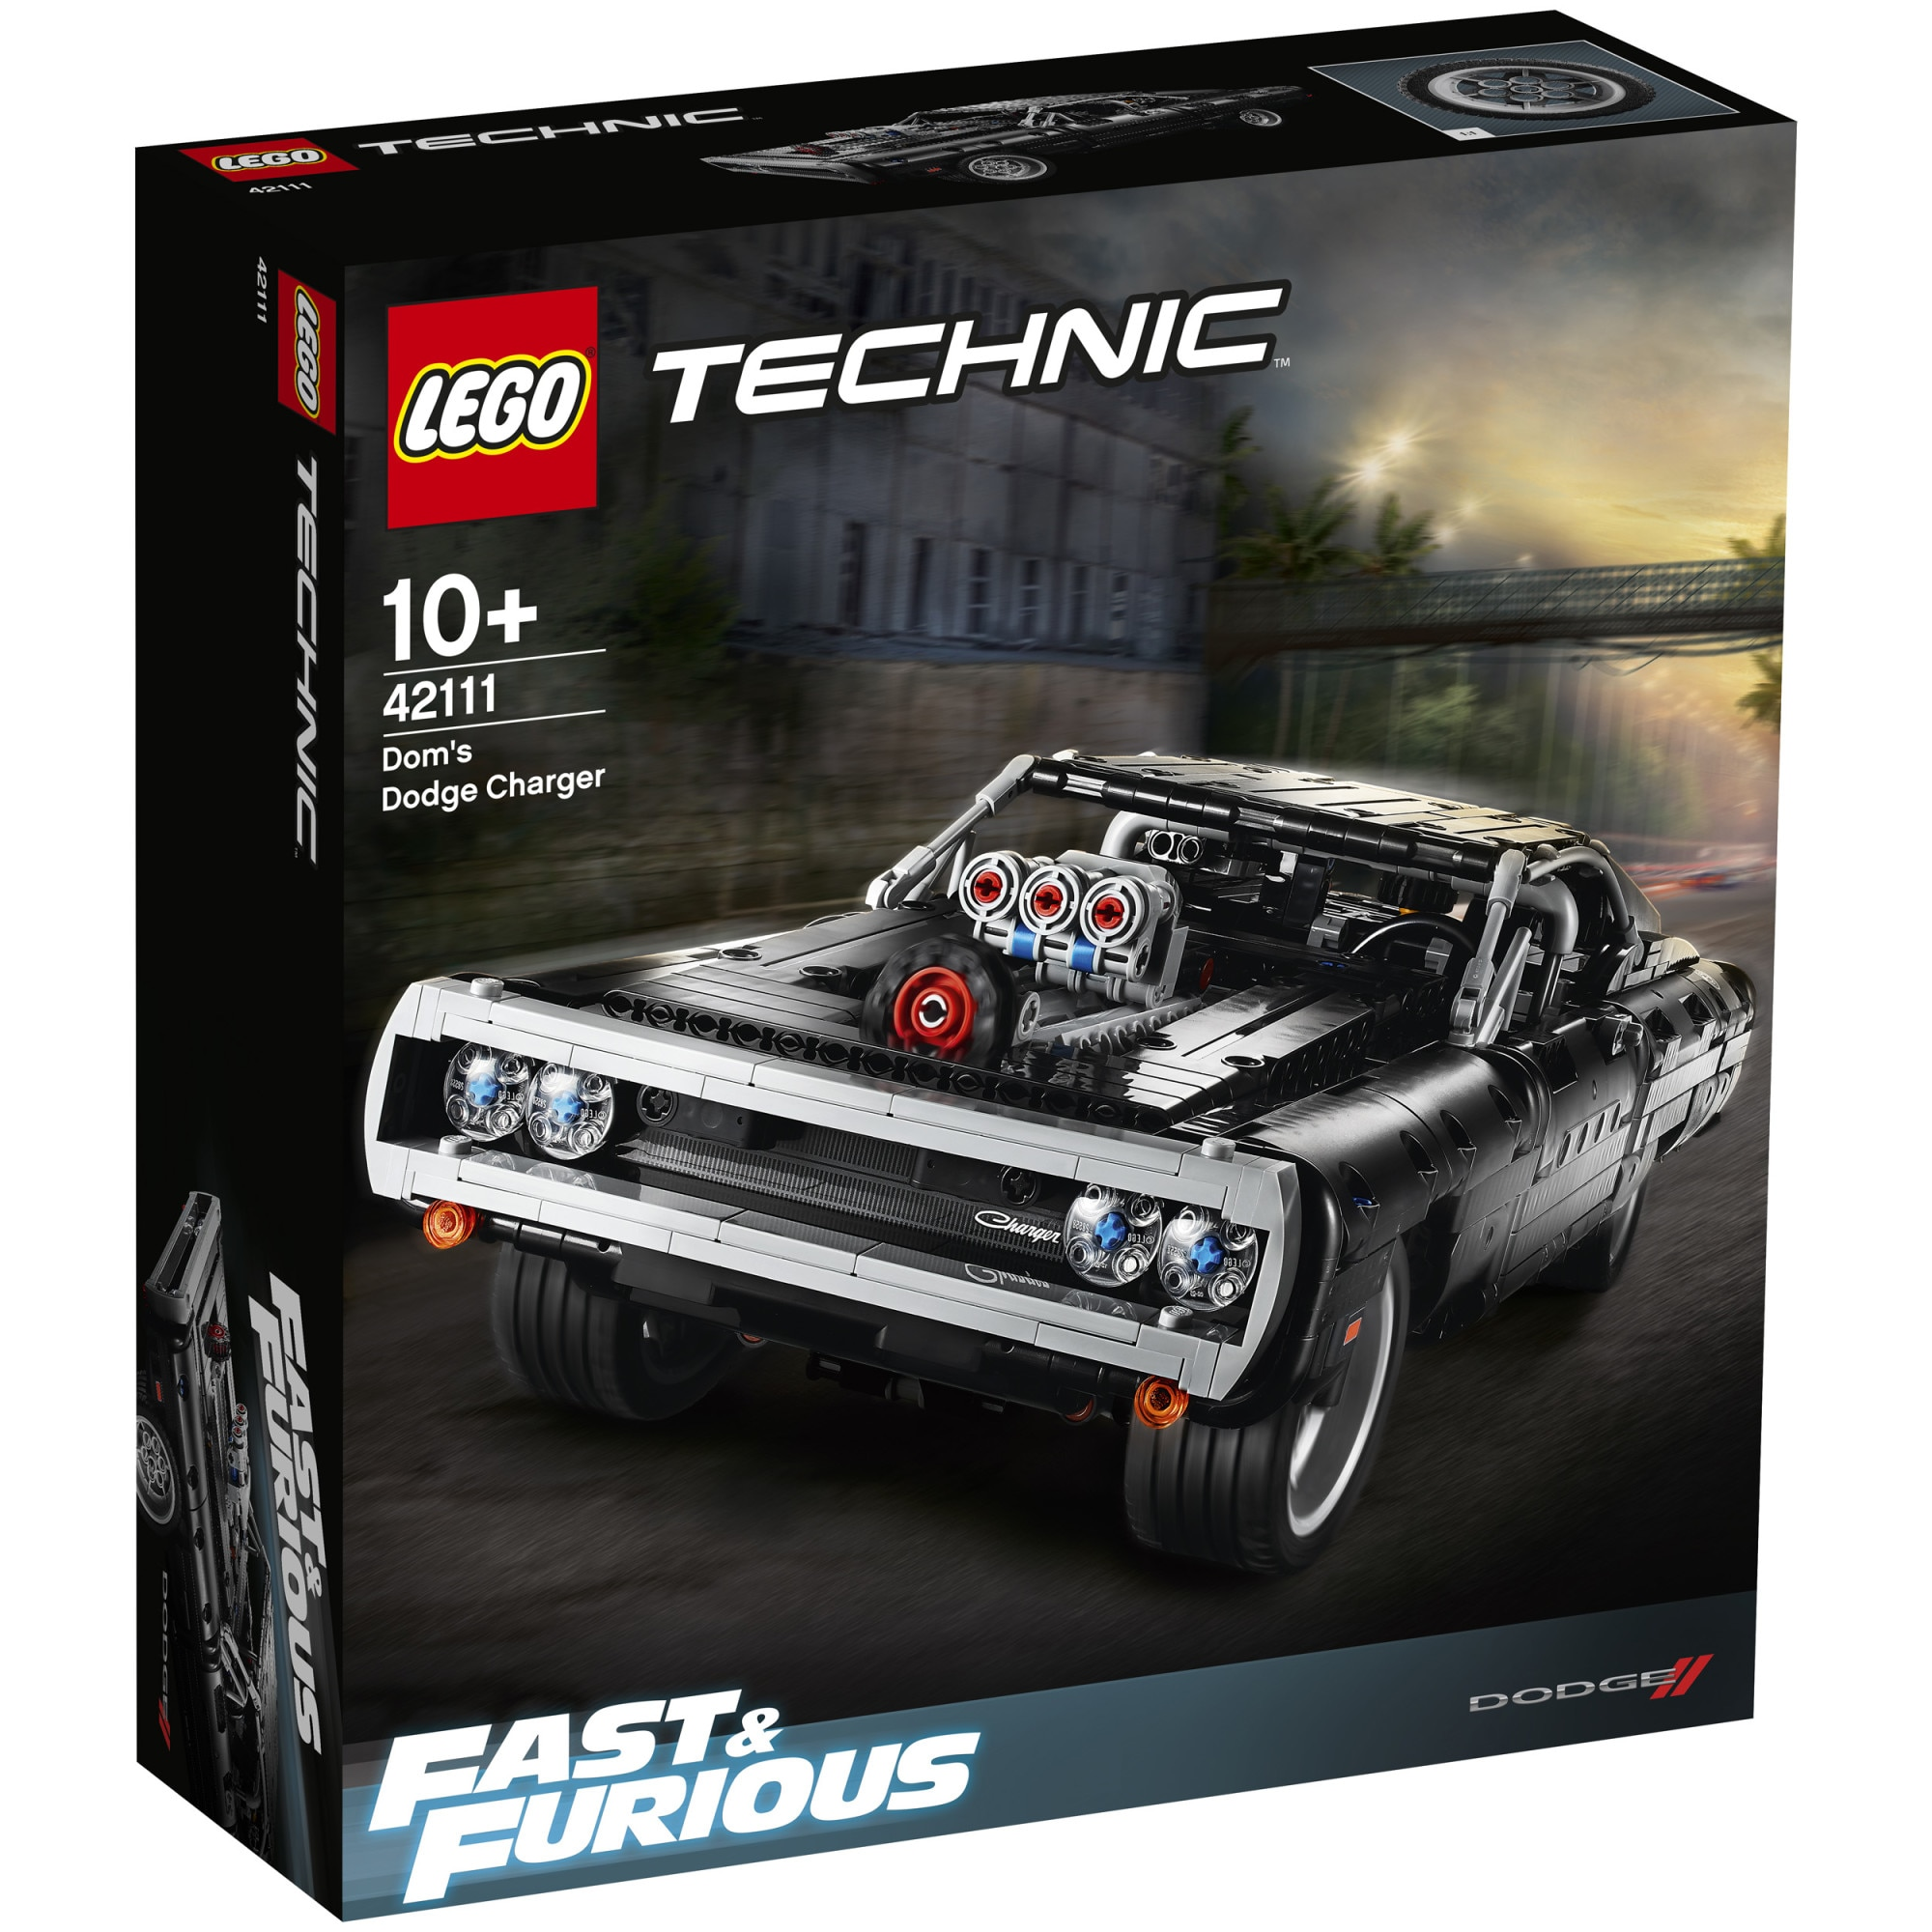 Fotografie LEGO Technic - Dom's Dodge Charger 42111, 1077 piese